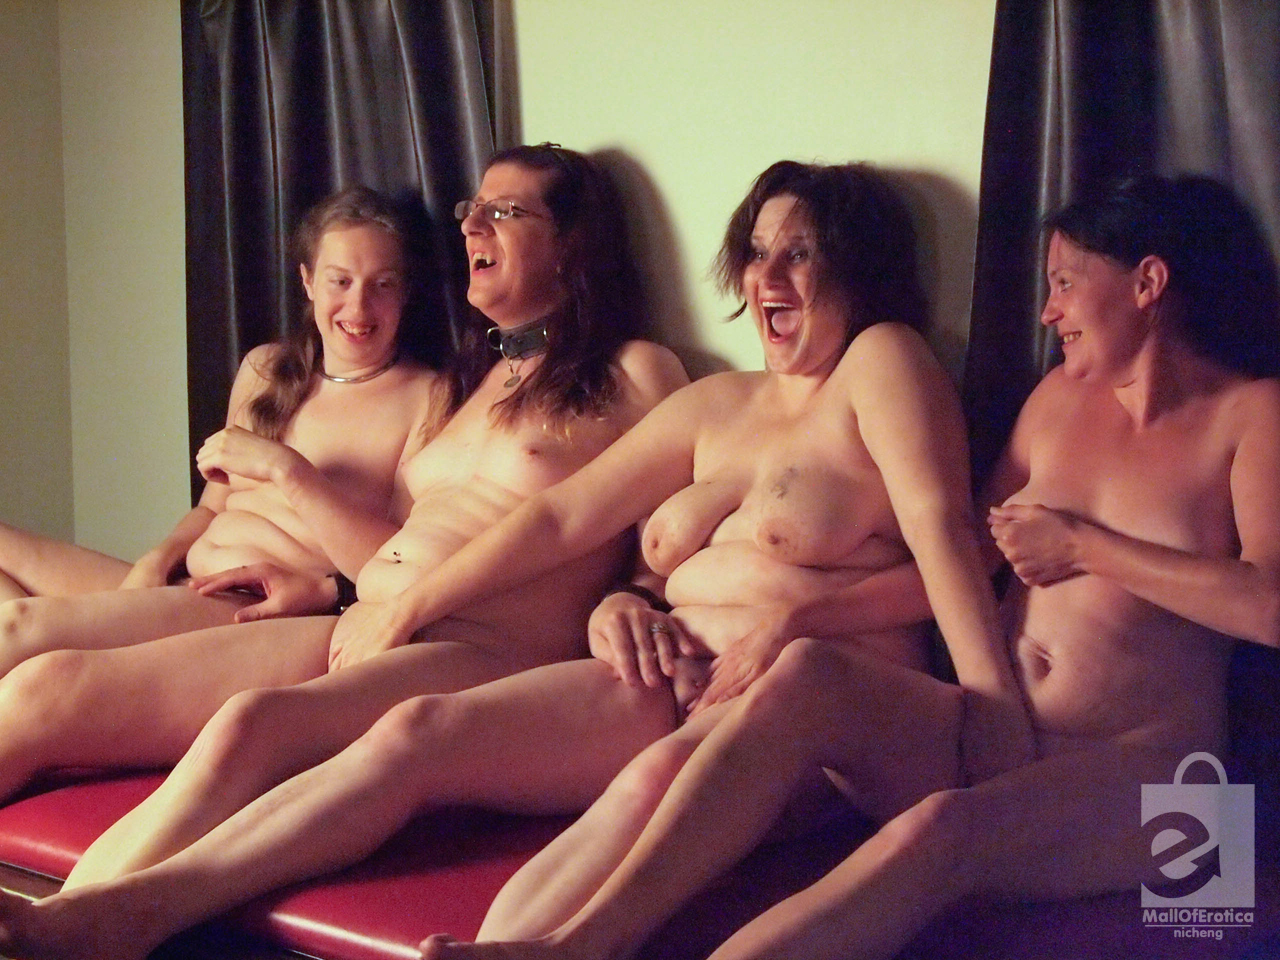 Remarkable, Charmed cast fake nude have